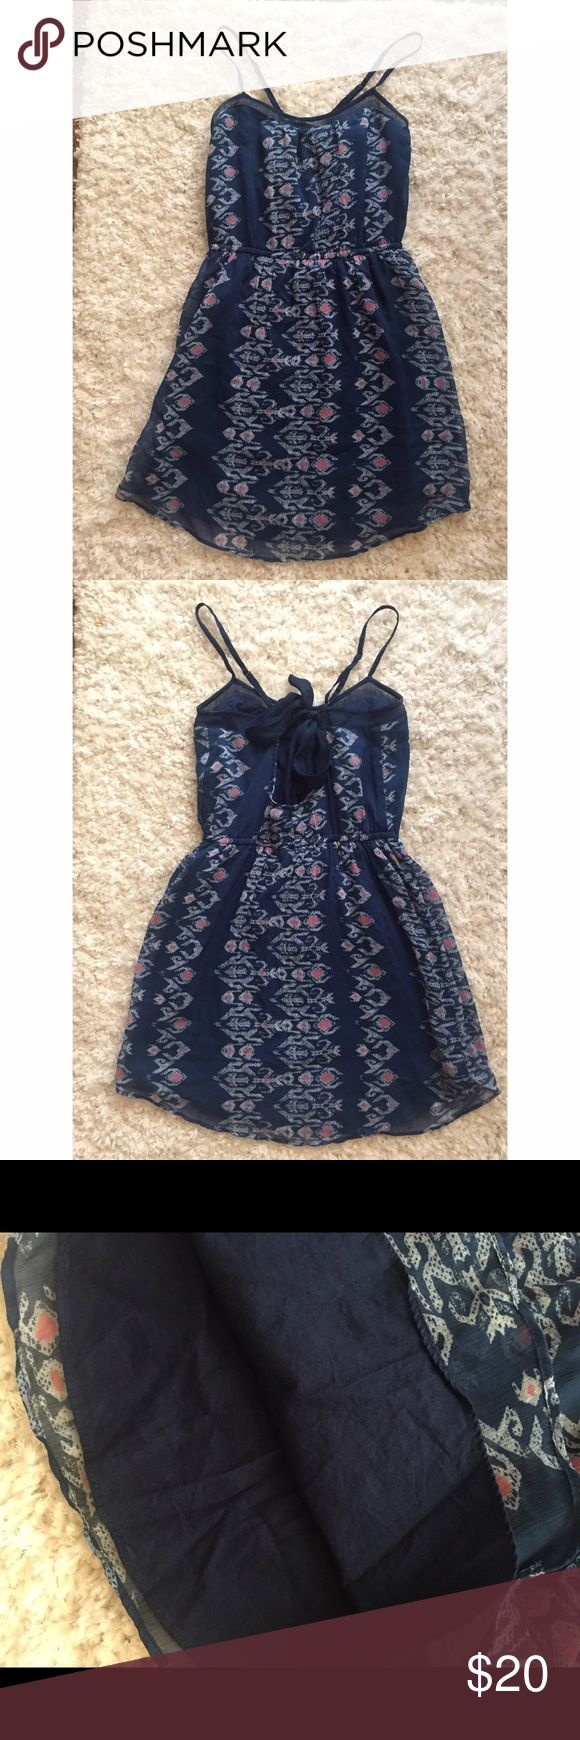 Hollister Dress Patterned navy blue linen dress. Ties in the back, fully LINED. Adjustable straps. Worn ONCE, like new! Excellent condition! Perfect for those Spring/Summer days. Very comfortable! Hollister Dresses